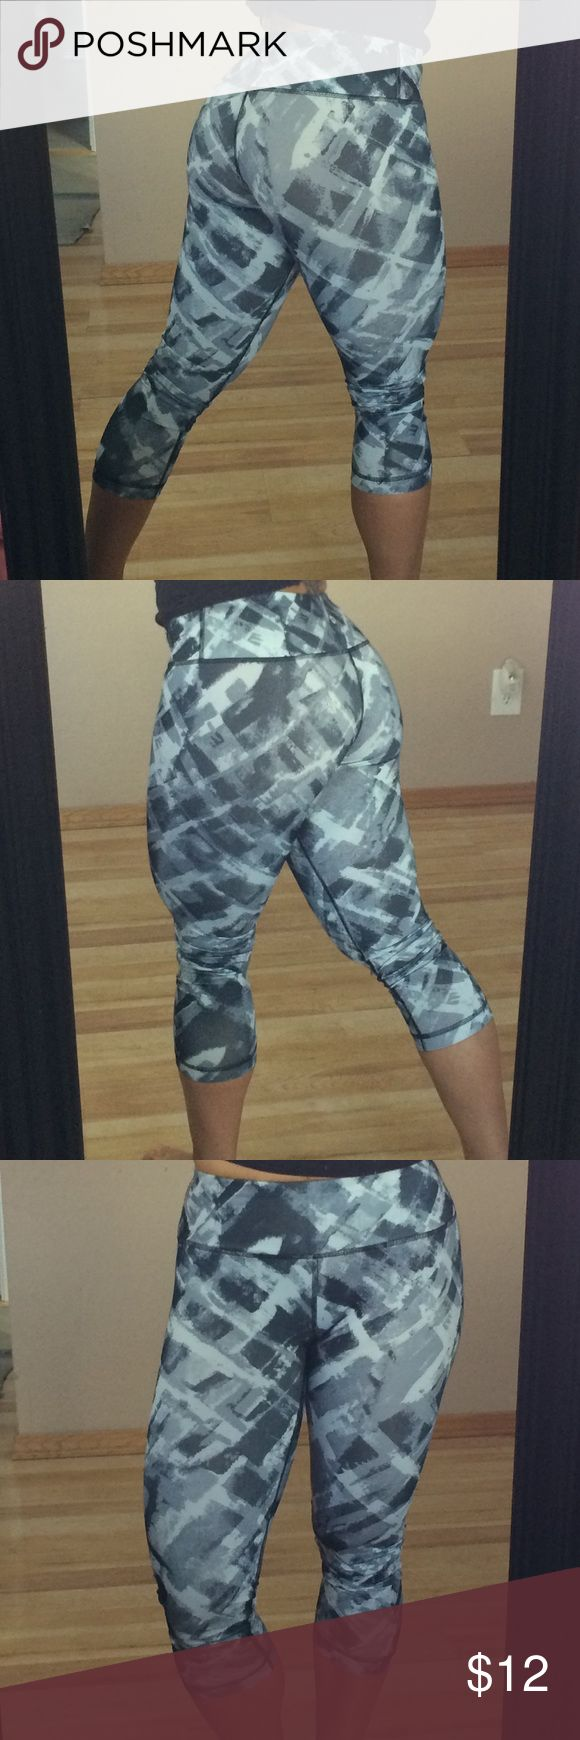 90 degrees multicolor XS Only worn once, still like new, durable great compression! Not Nike brand. Nike Pants Leggings